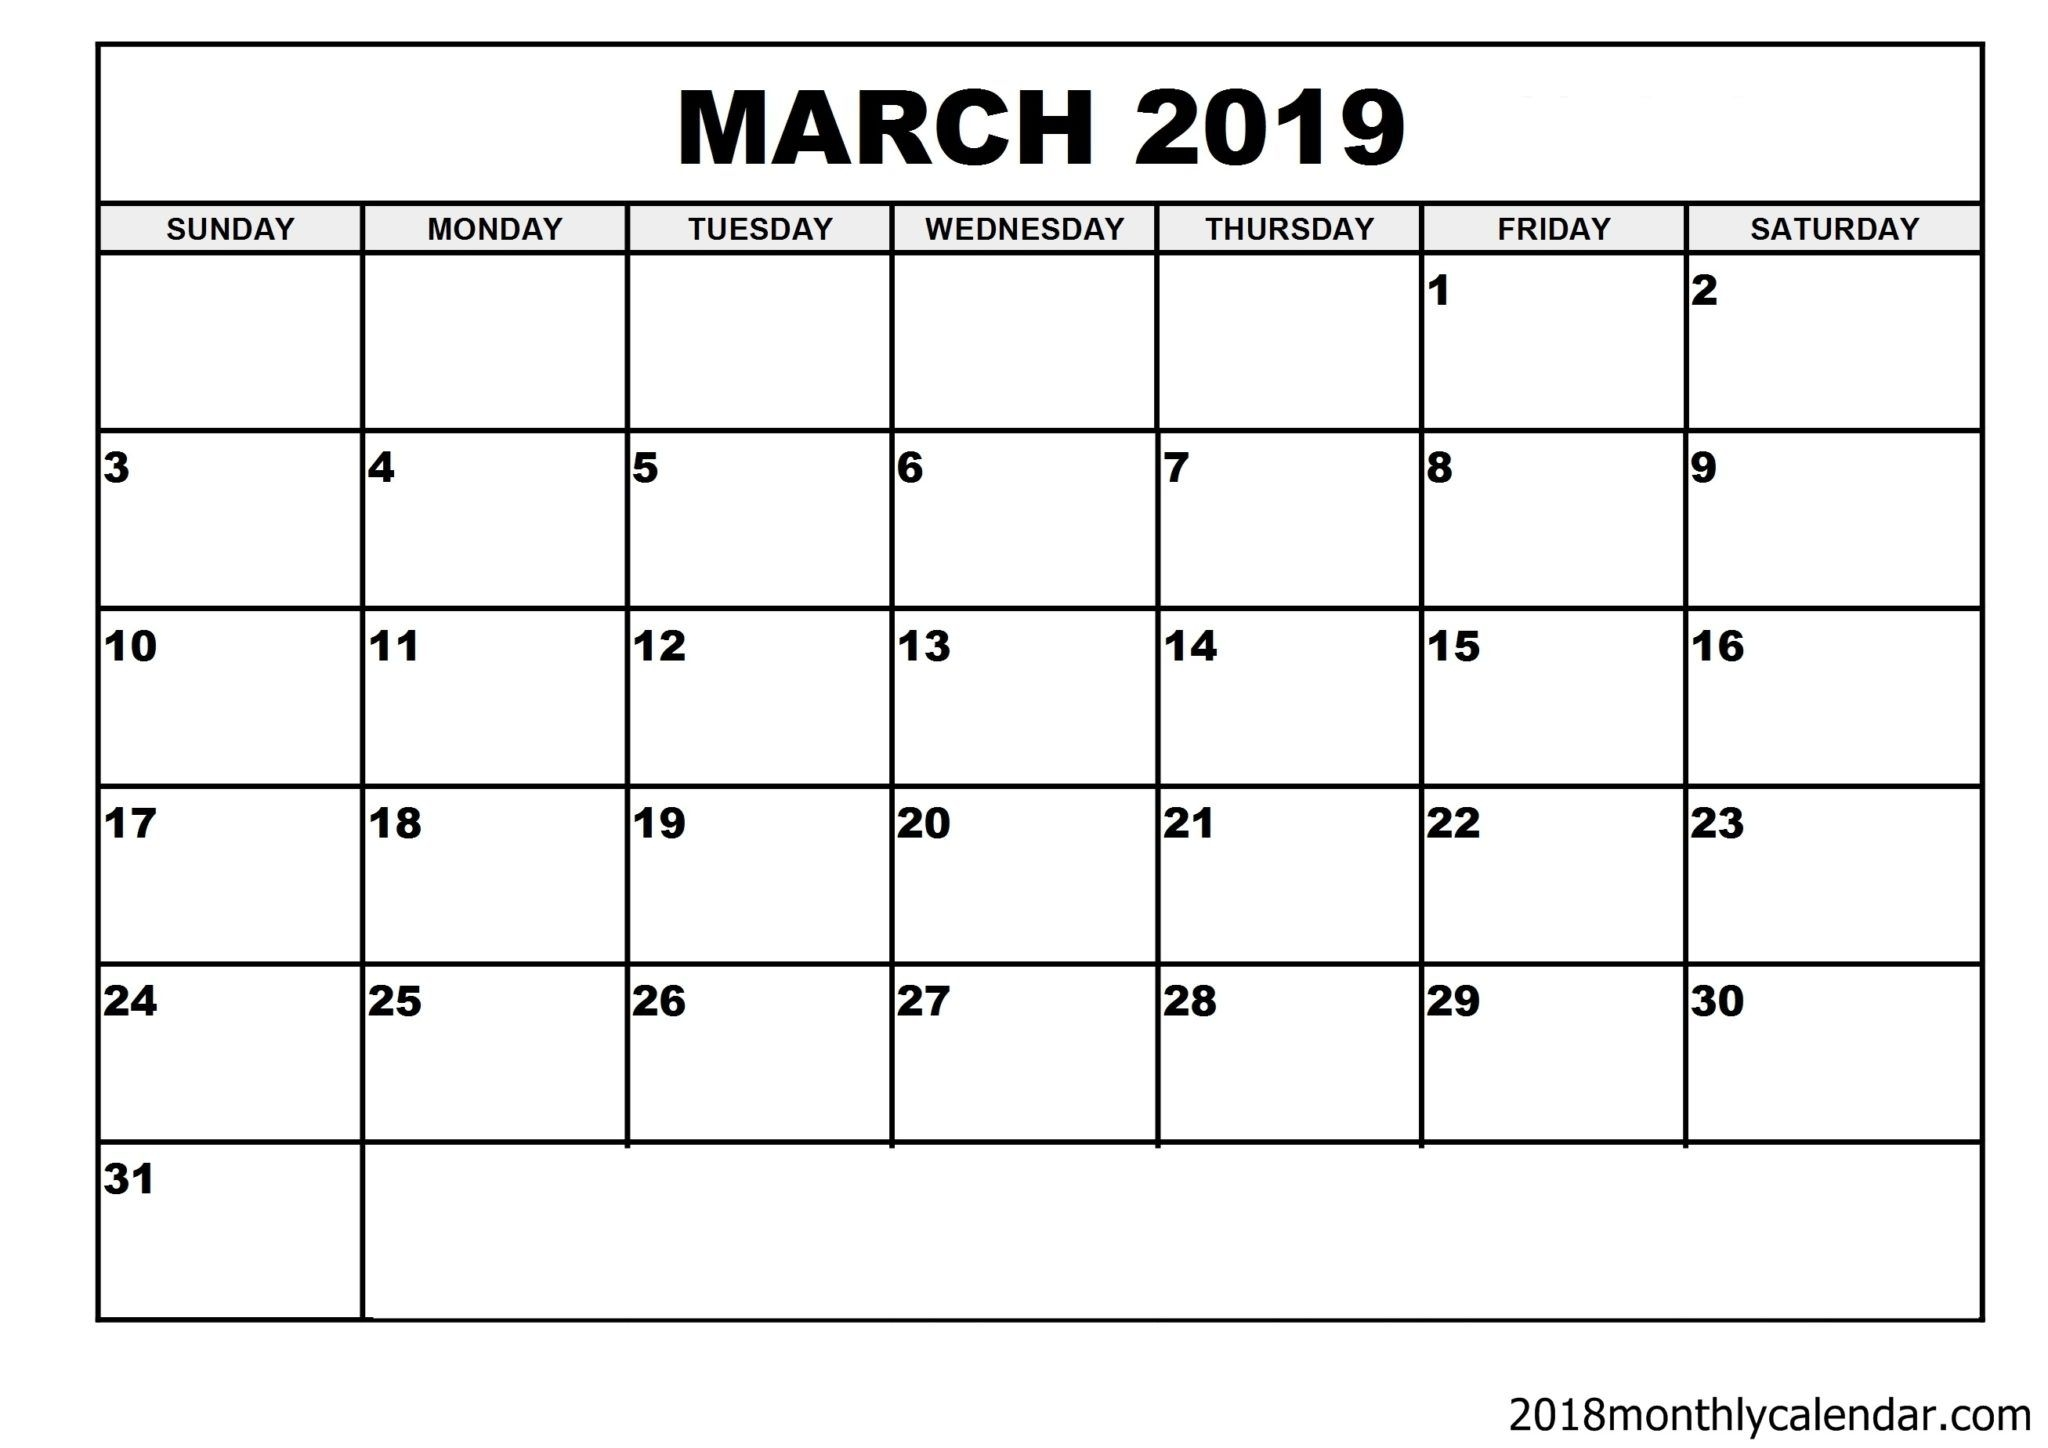 Free March 2019 Printable Calendar Templates Us Edition